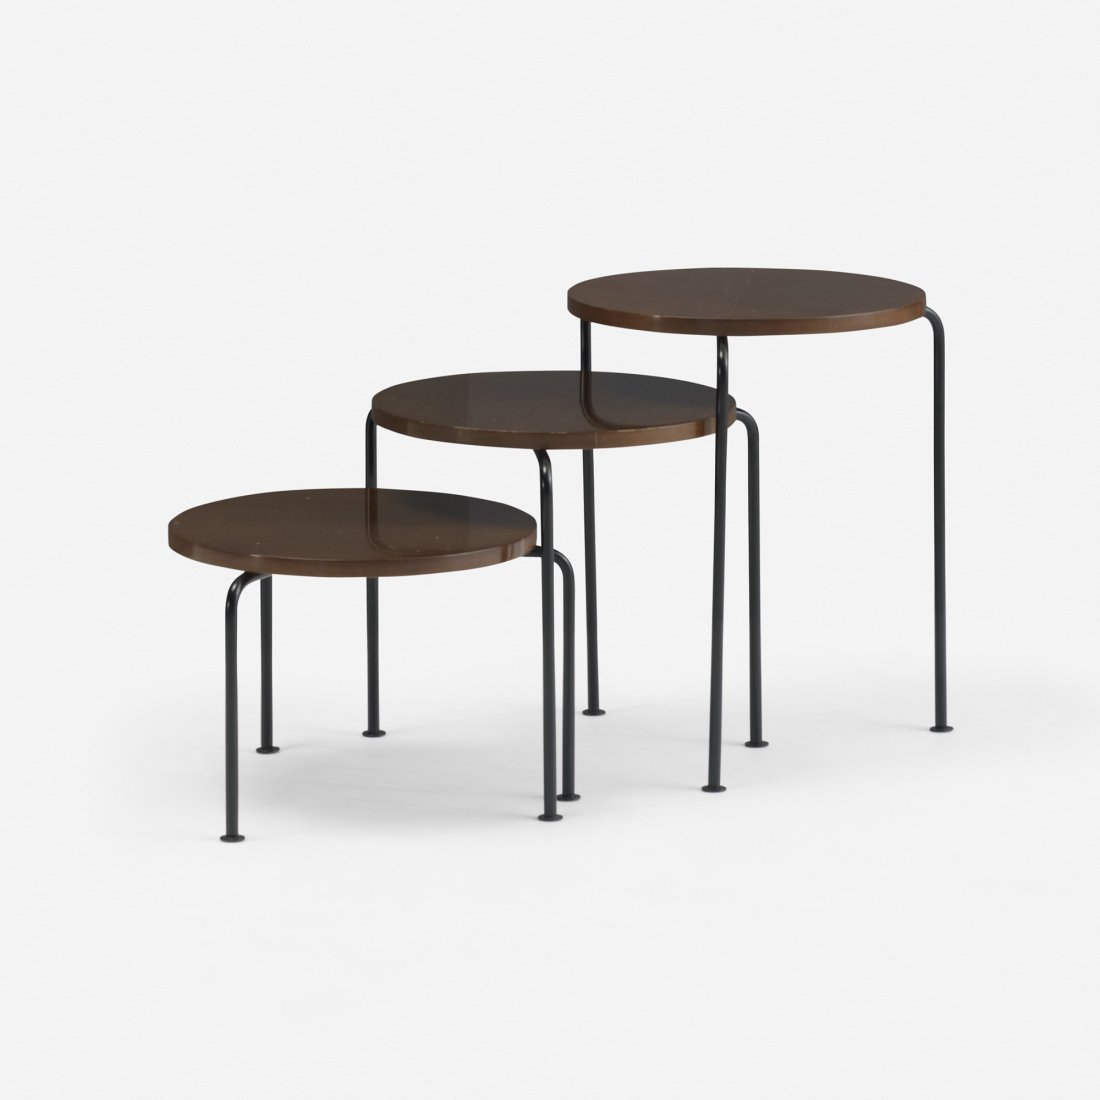 108: Luther Conover nesting tables, set of three